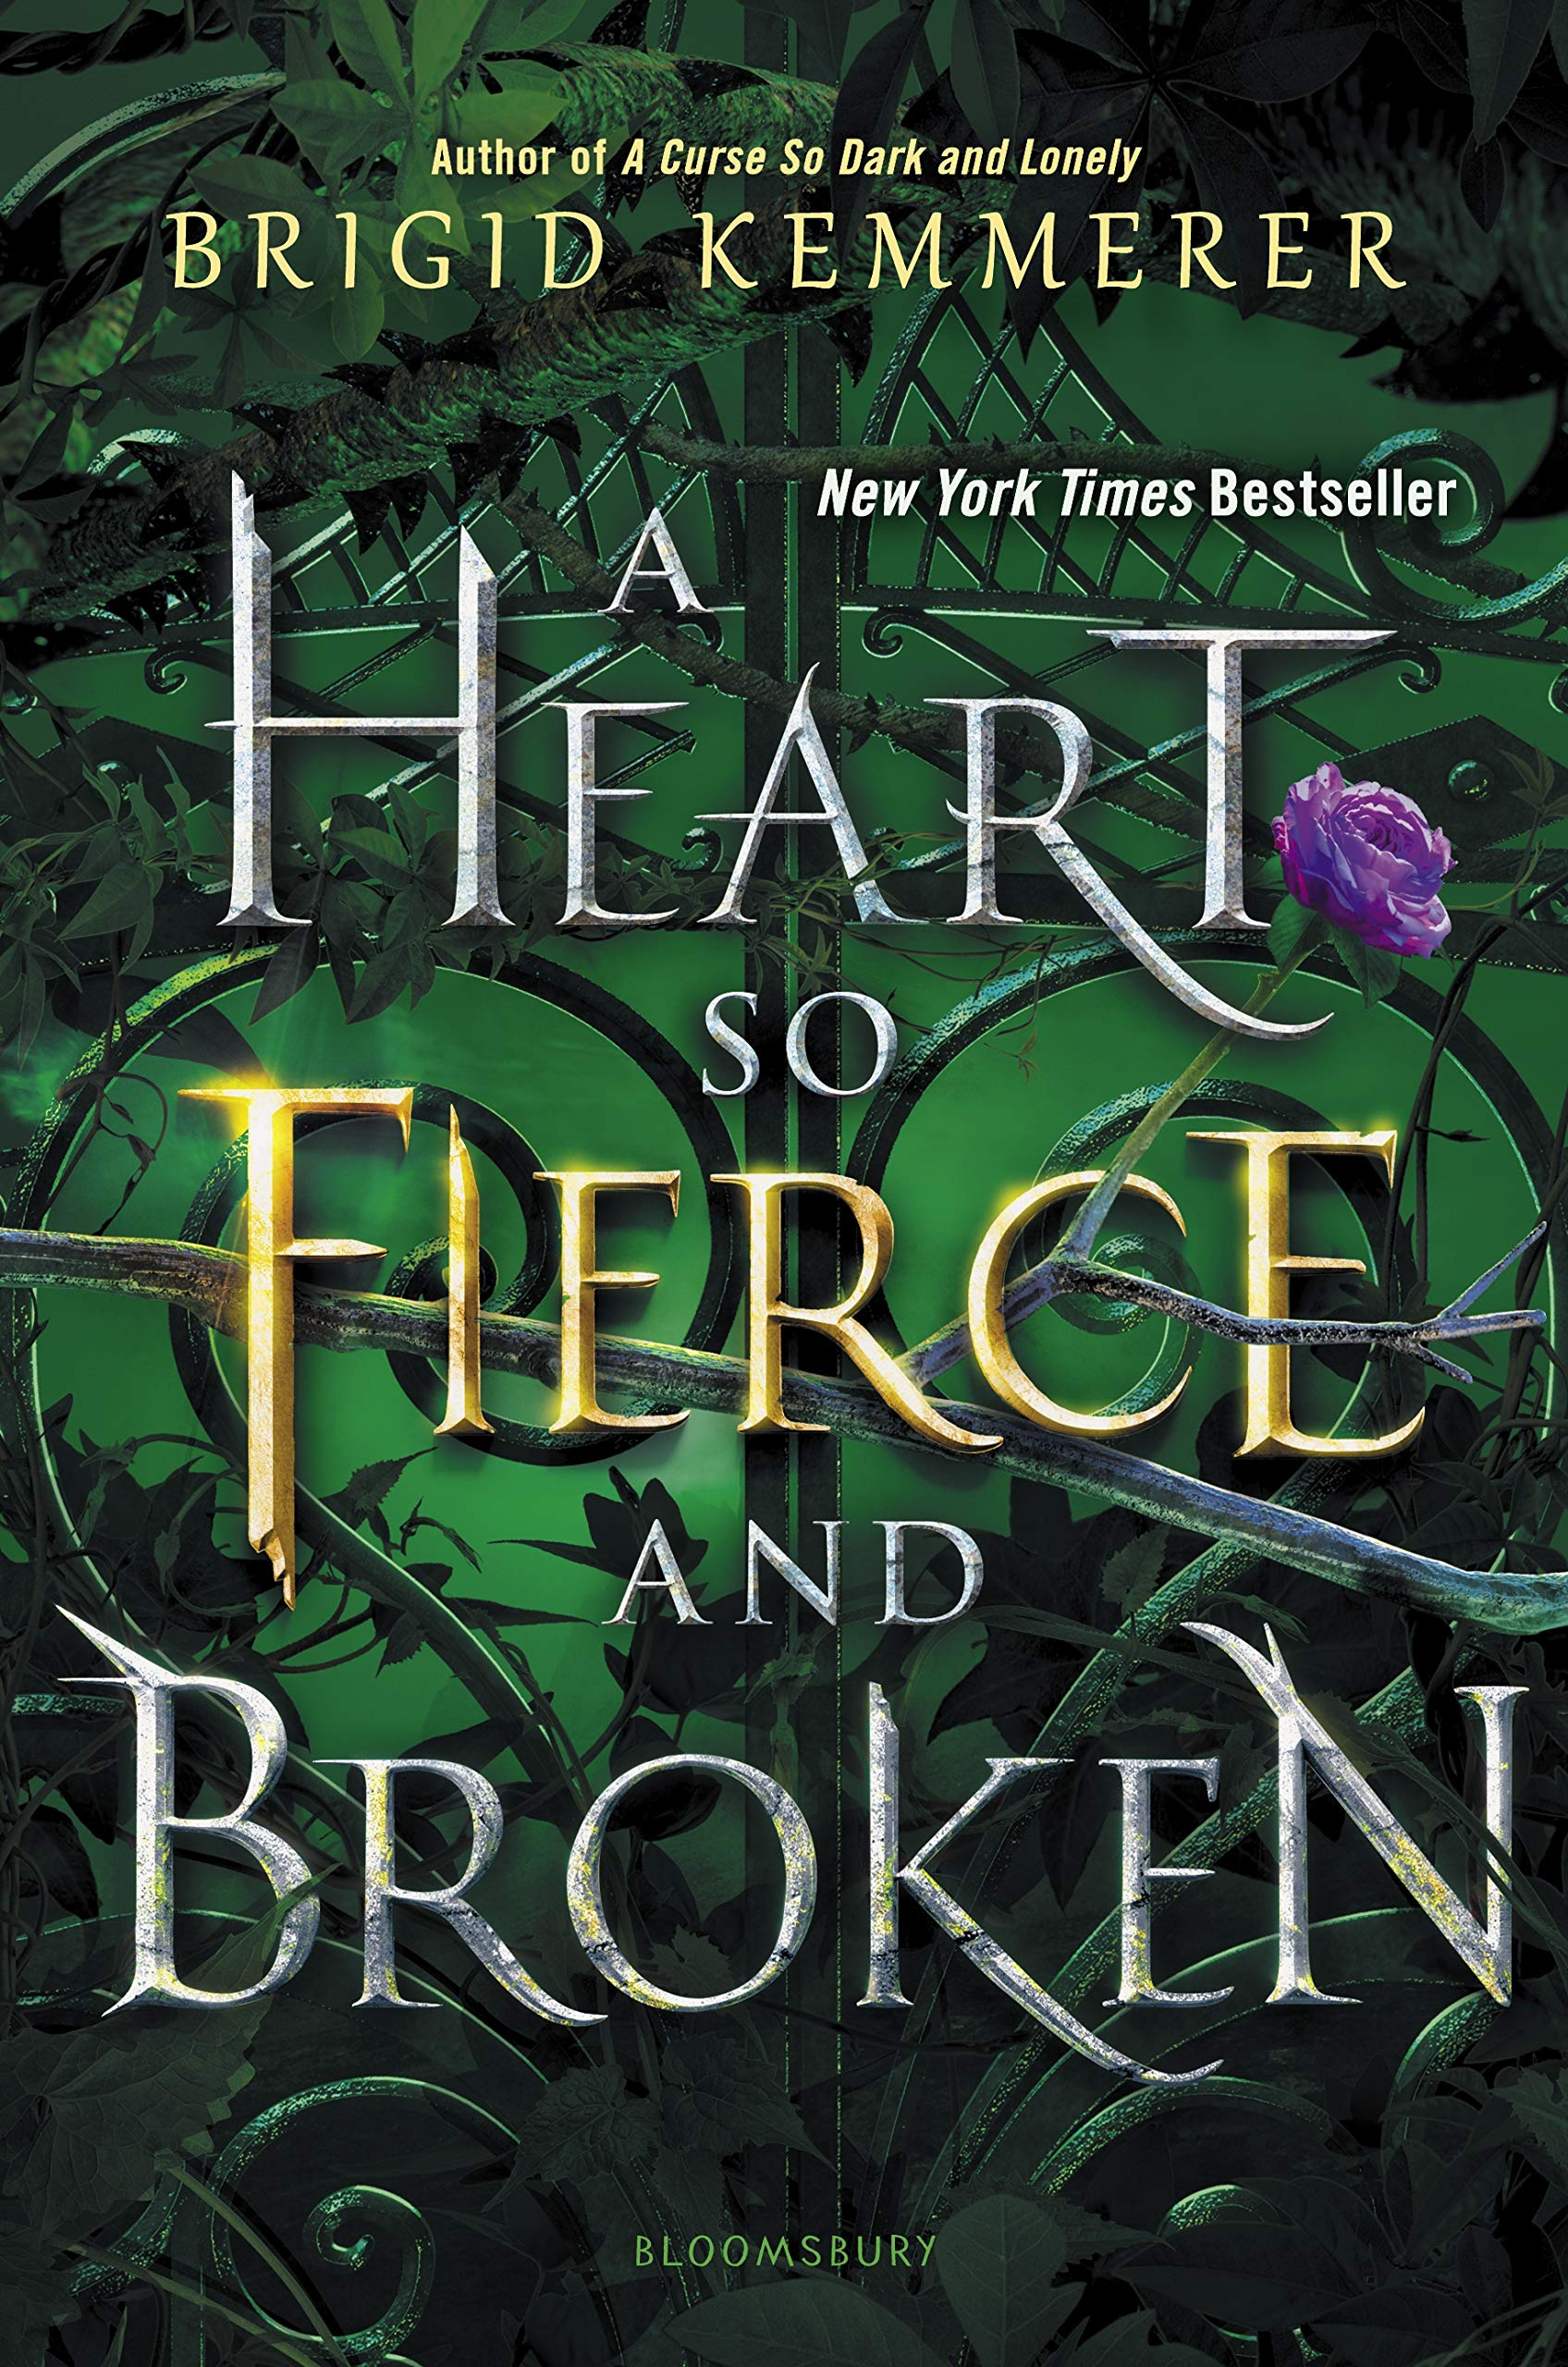 Image result for brigid kemmerer a heart so fierce and broken""